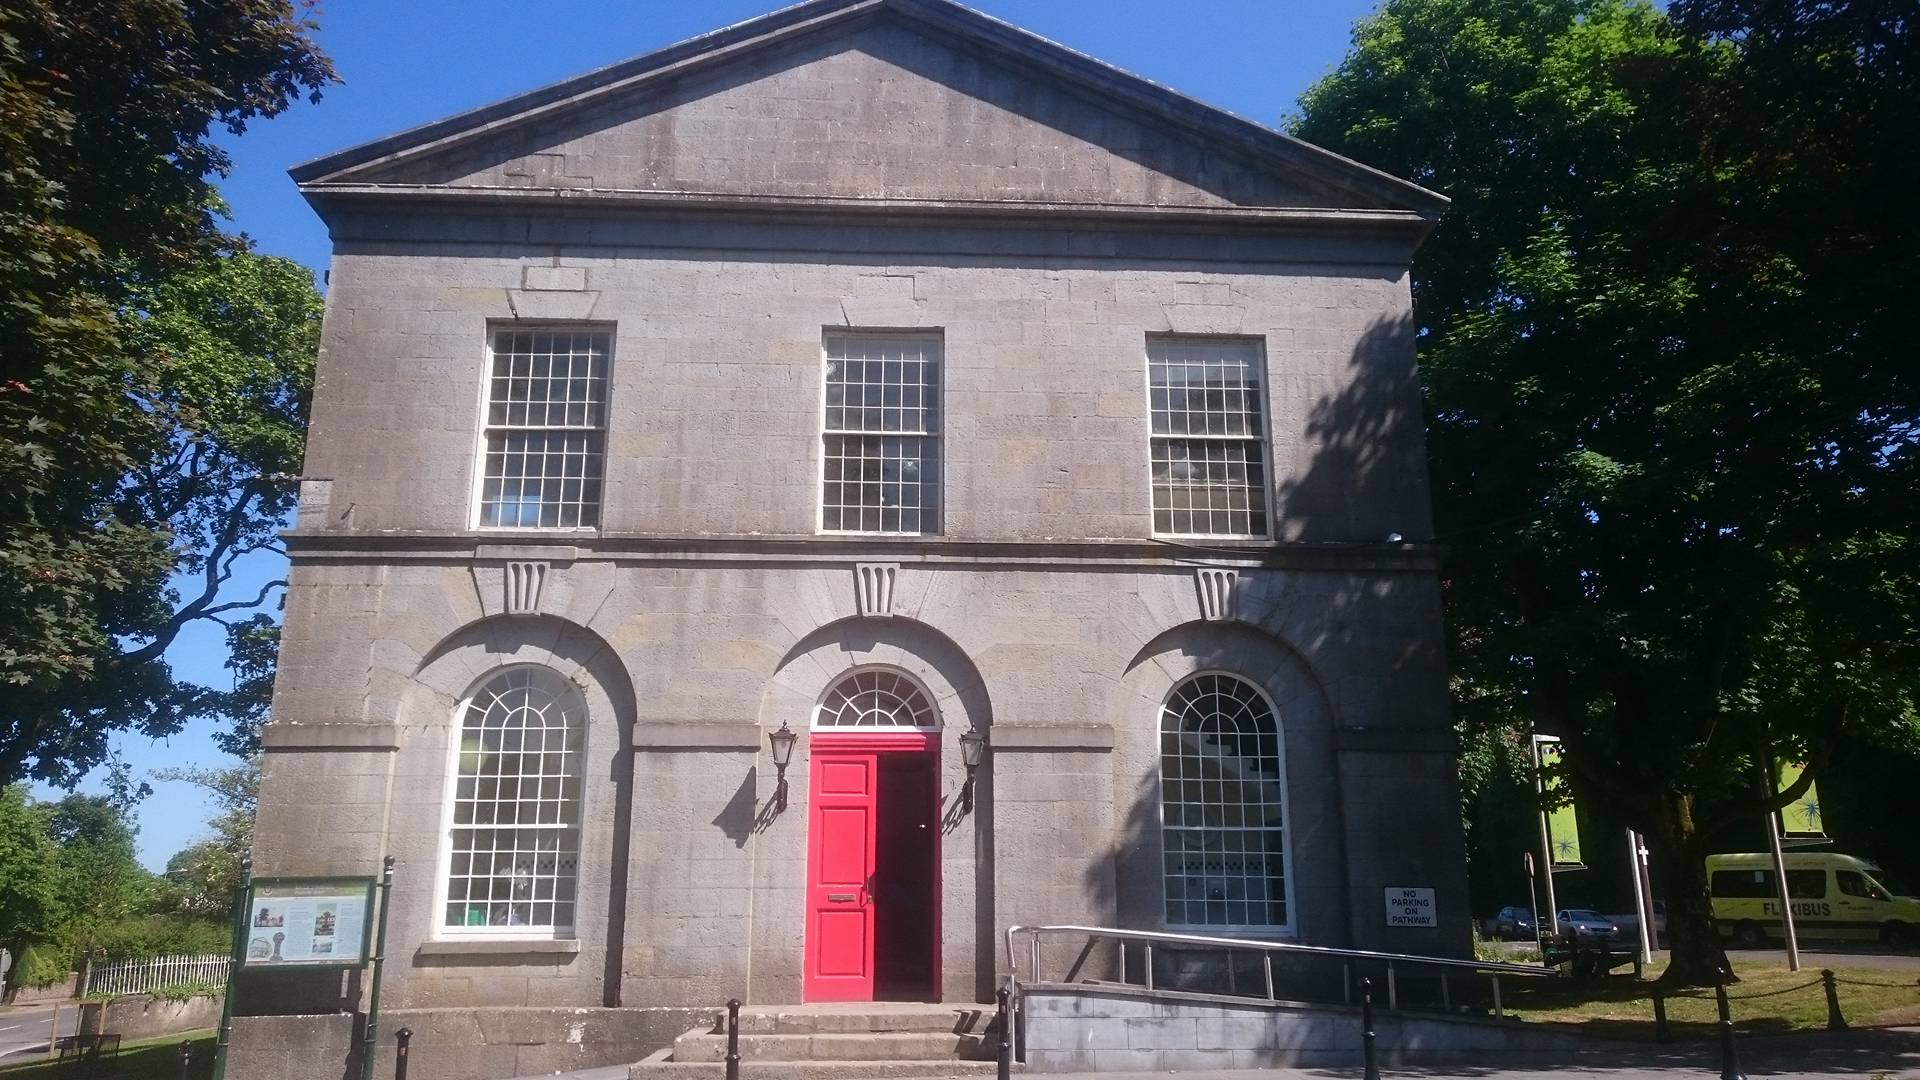 VisitingKells.ie - The Old Courthouse